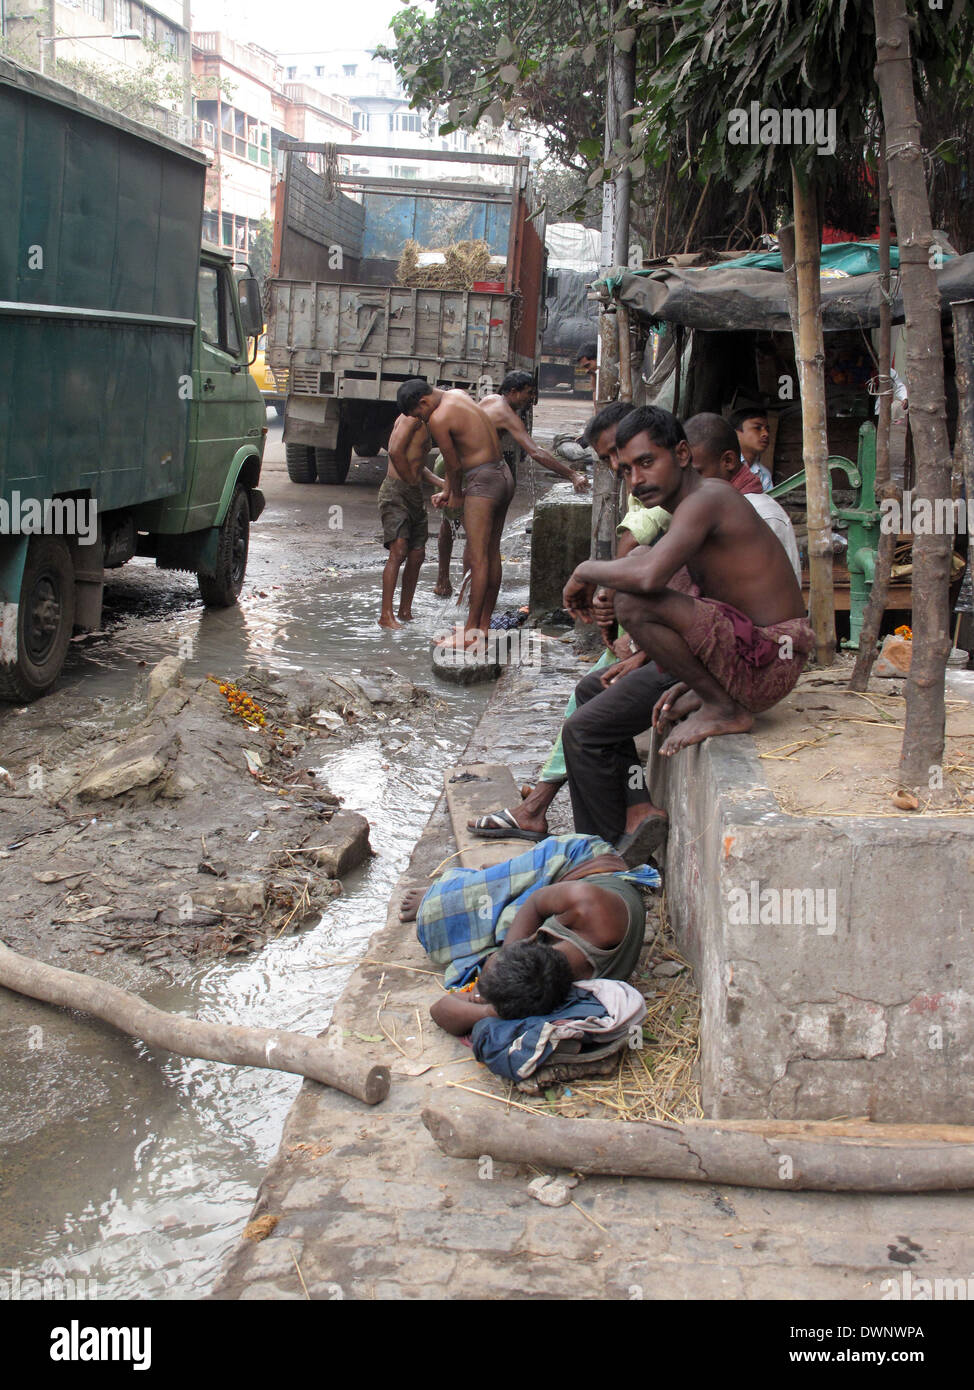 Streets of Kolkata. Indian people wash themselves on a street , January 25, 2009. Stock Photo